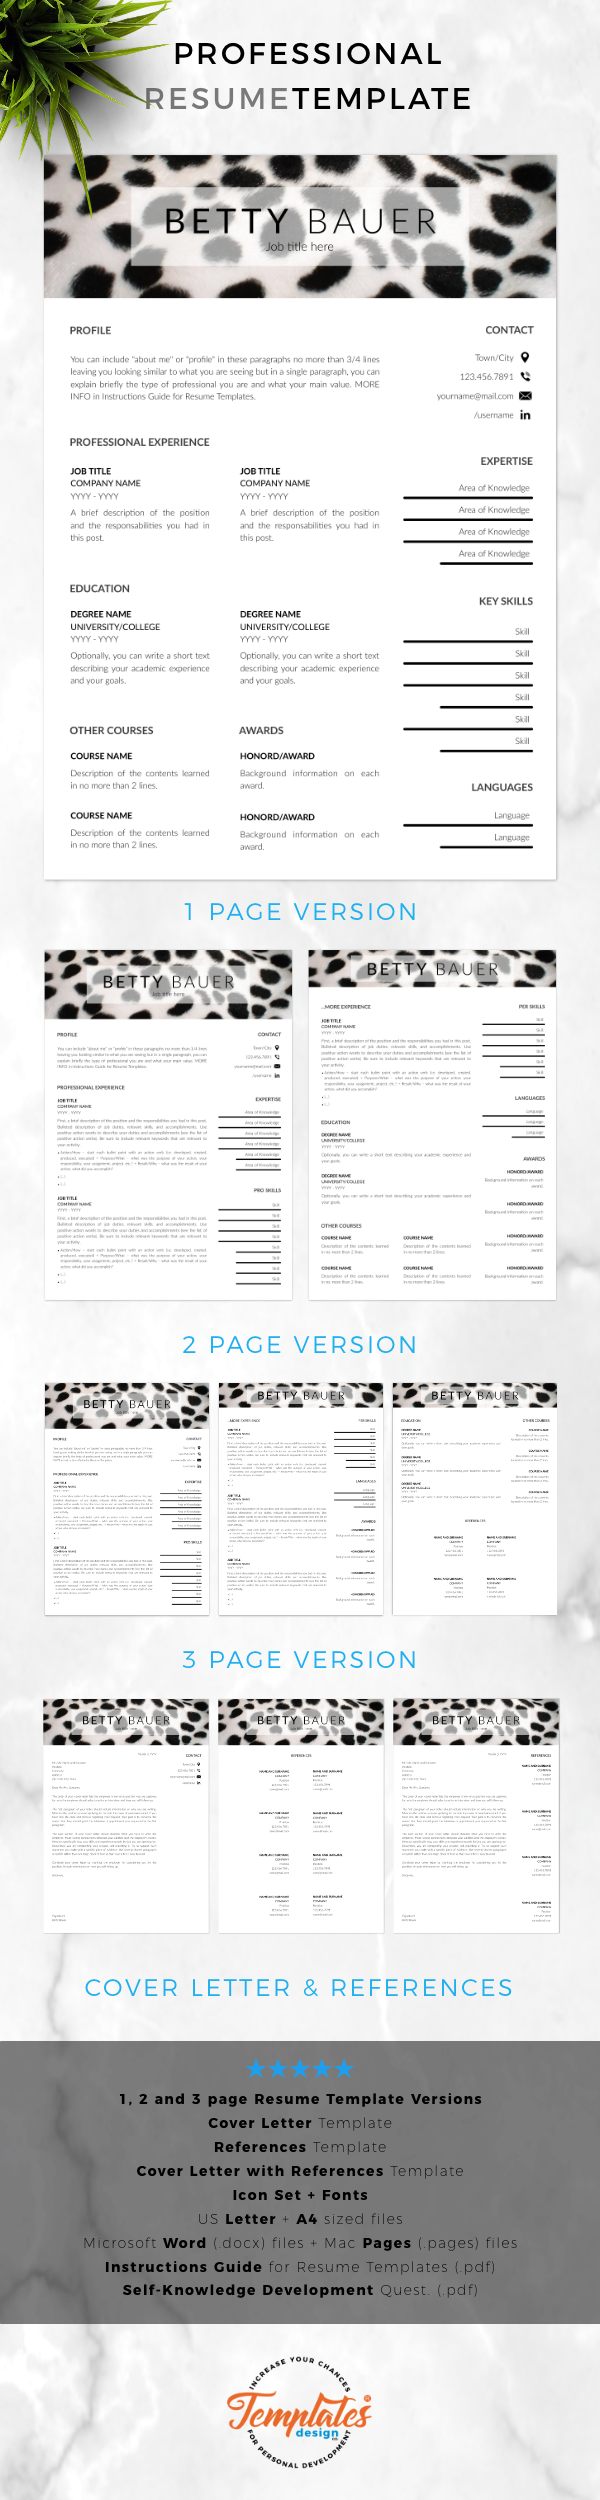 Pet Care Resume Animal Care Cv Template For Word Pages Cv For Animal Care Workers Pet Sitters Or Animal Caretakers Instant Download Plantilla Cv